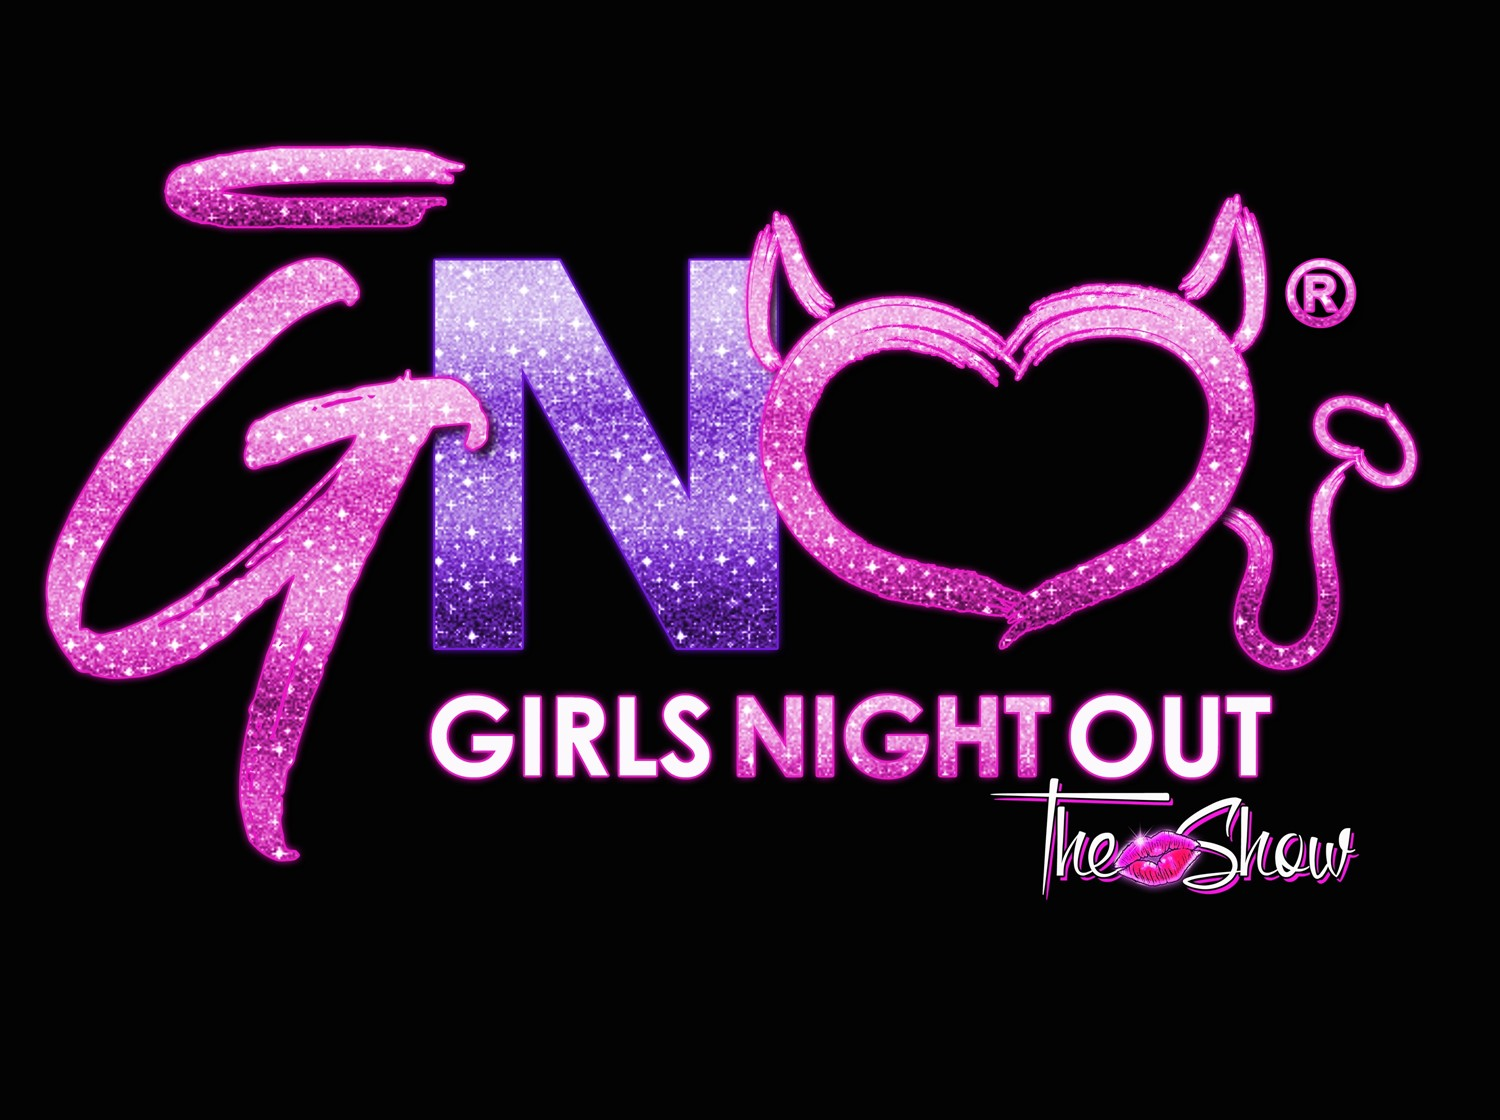 Sidekicks Saloon (21+) Prescott Valley, AZ on Aug 07, 20:30@Sidekicks Saloon - Buy tickets and Get information on Girls Night Out the Show tickets.girlsnightouttheshow.com